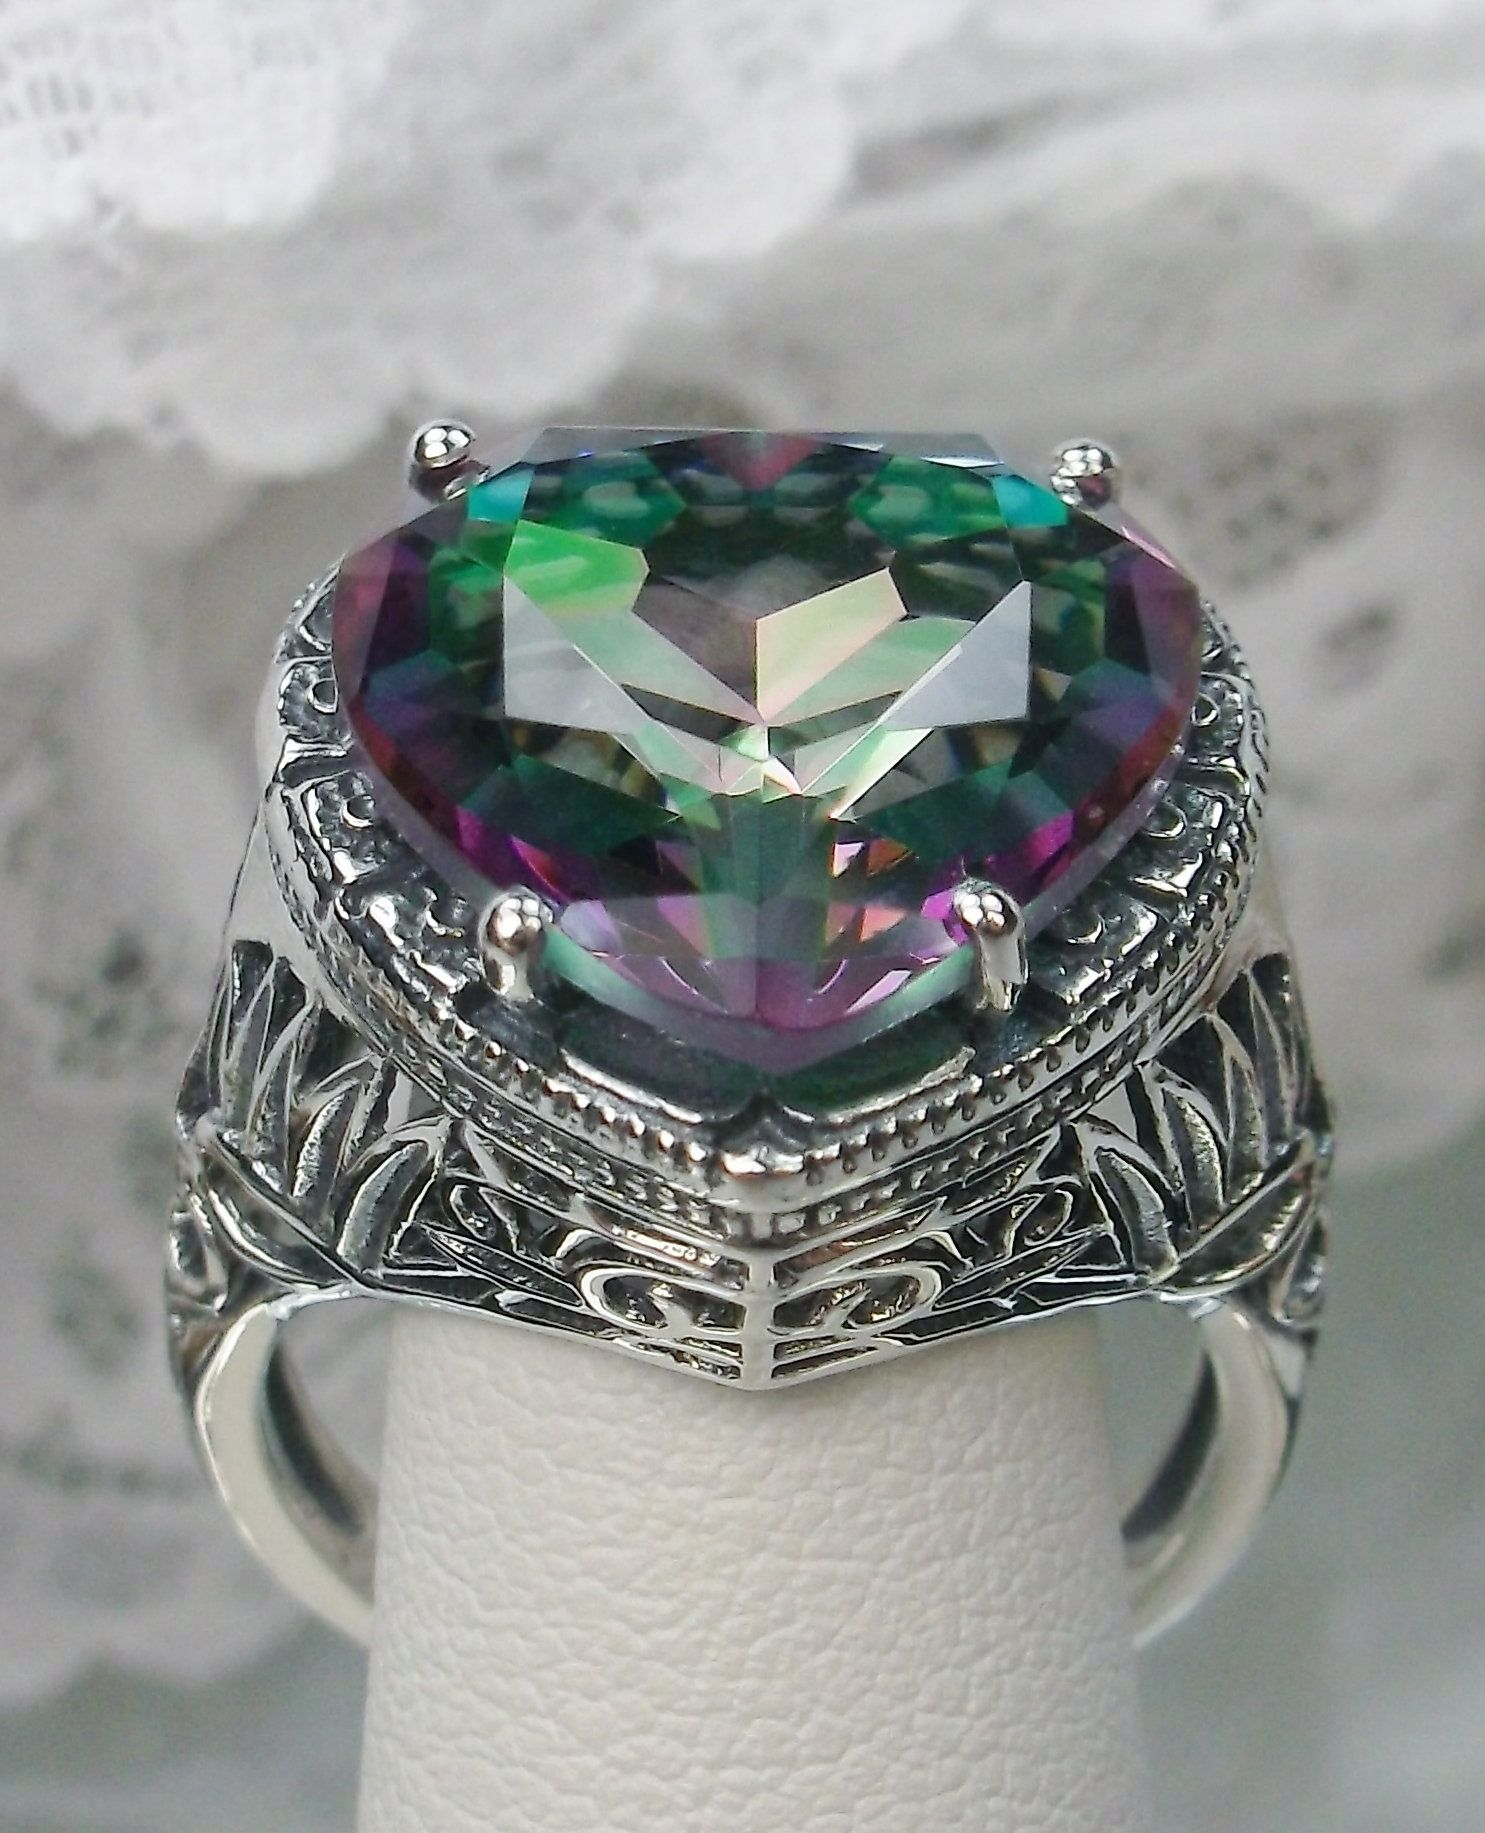 10ct *Mystic Topaz* Sterling Silver Gothic Heart Filigree Ring {Made To Order}